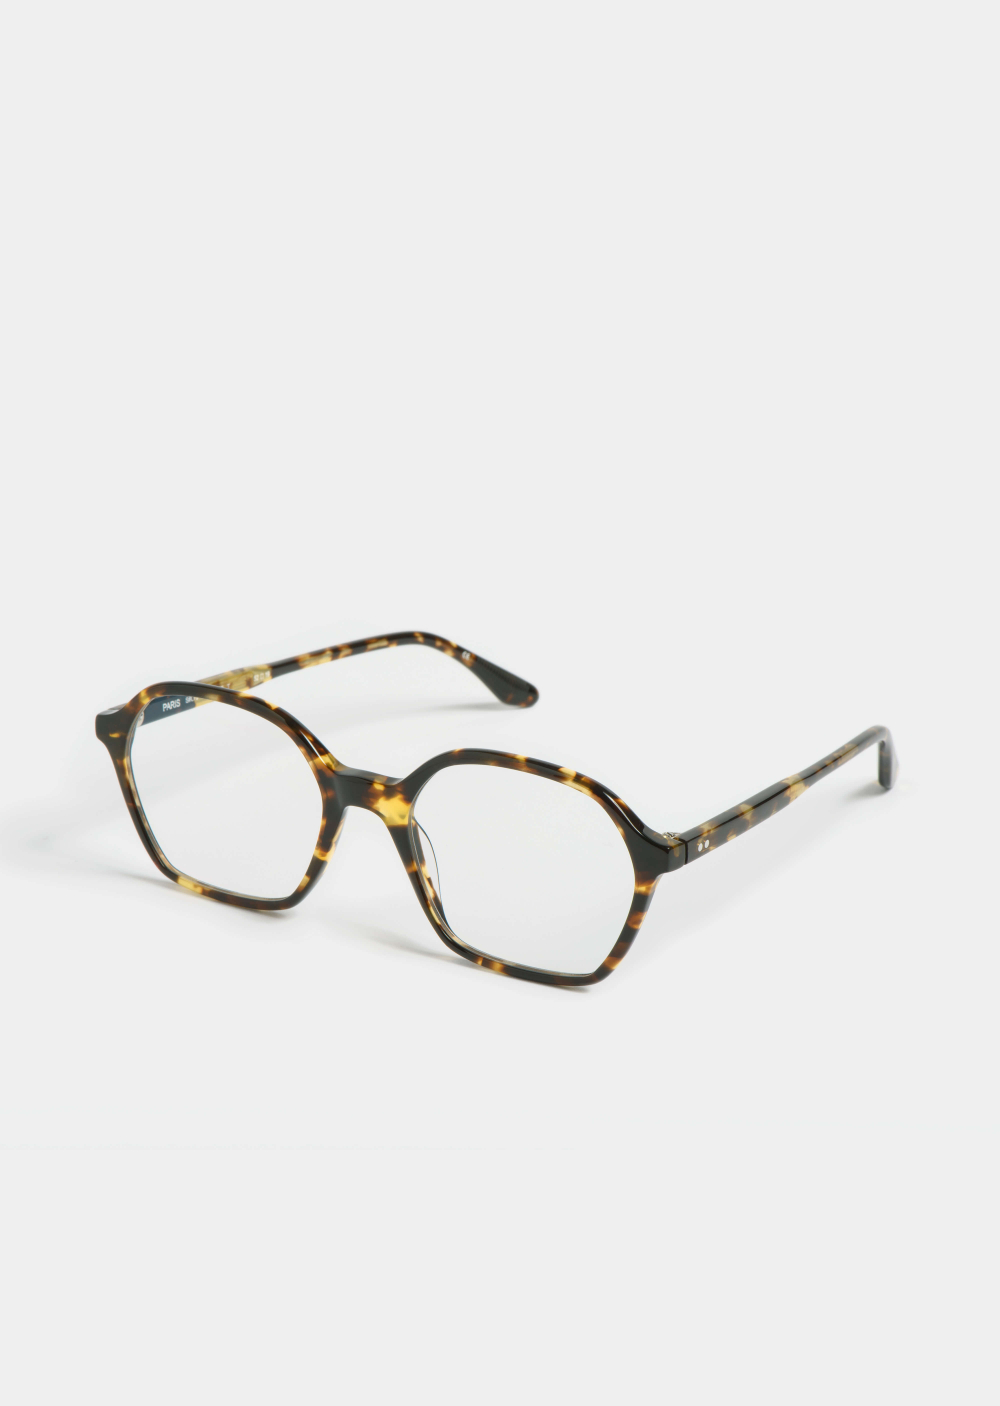 PETER AND MAY -  - LT6 Colette RX tortoise